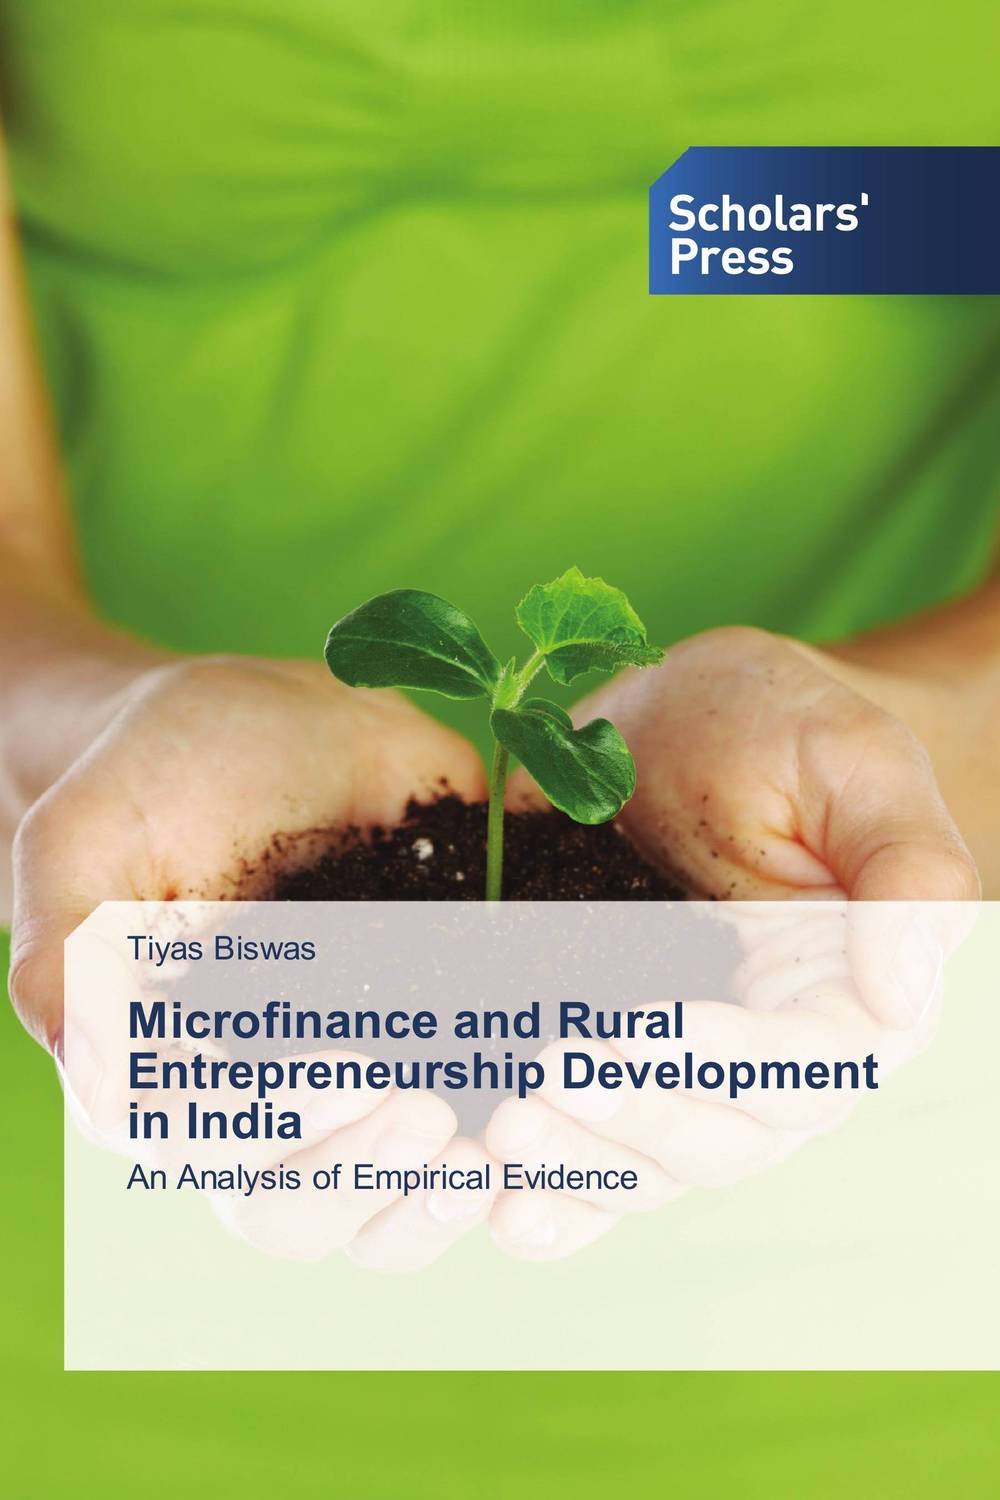 Microfinance and Rural Entrepreneurship Development in India jaynal ud din ahmed and mohd abdul rashid institutional finance for micro and small entreprises in india